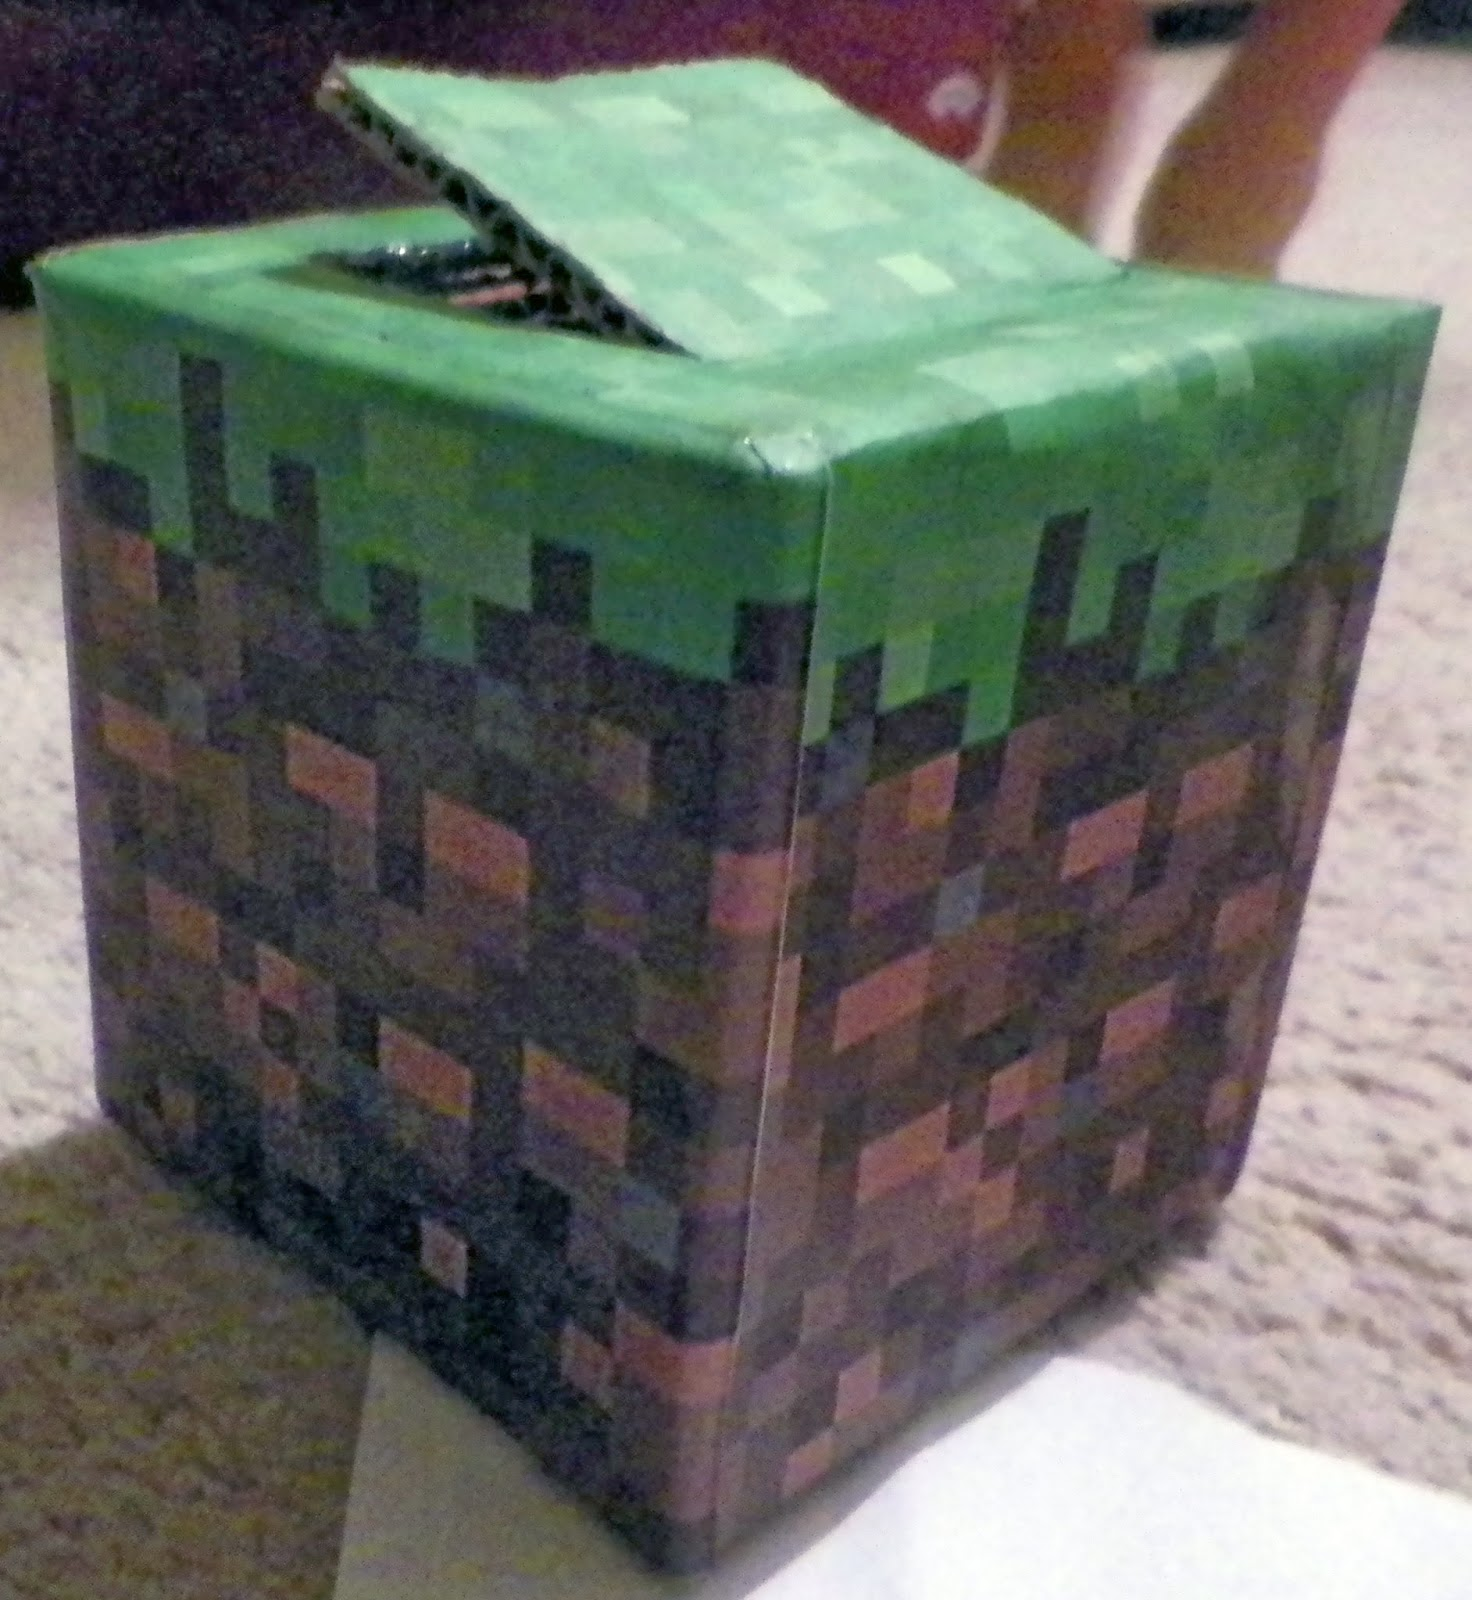 Minecraft Valentine Card Tutorial and Printable. Copyright Cassie's Creative Crafts